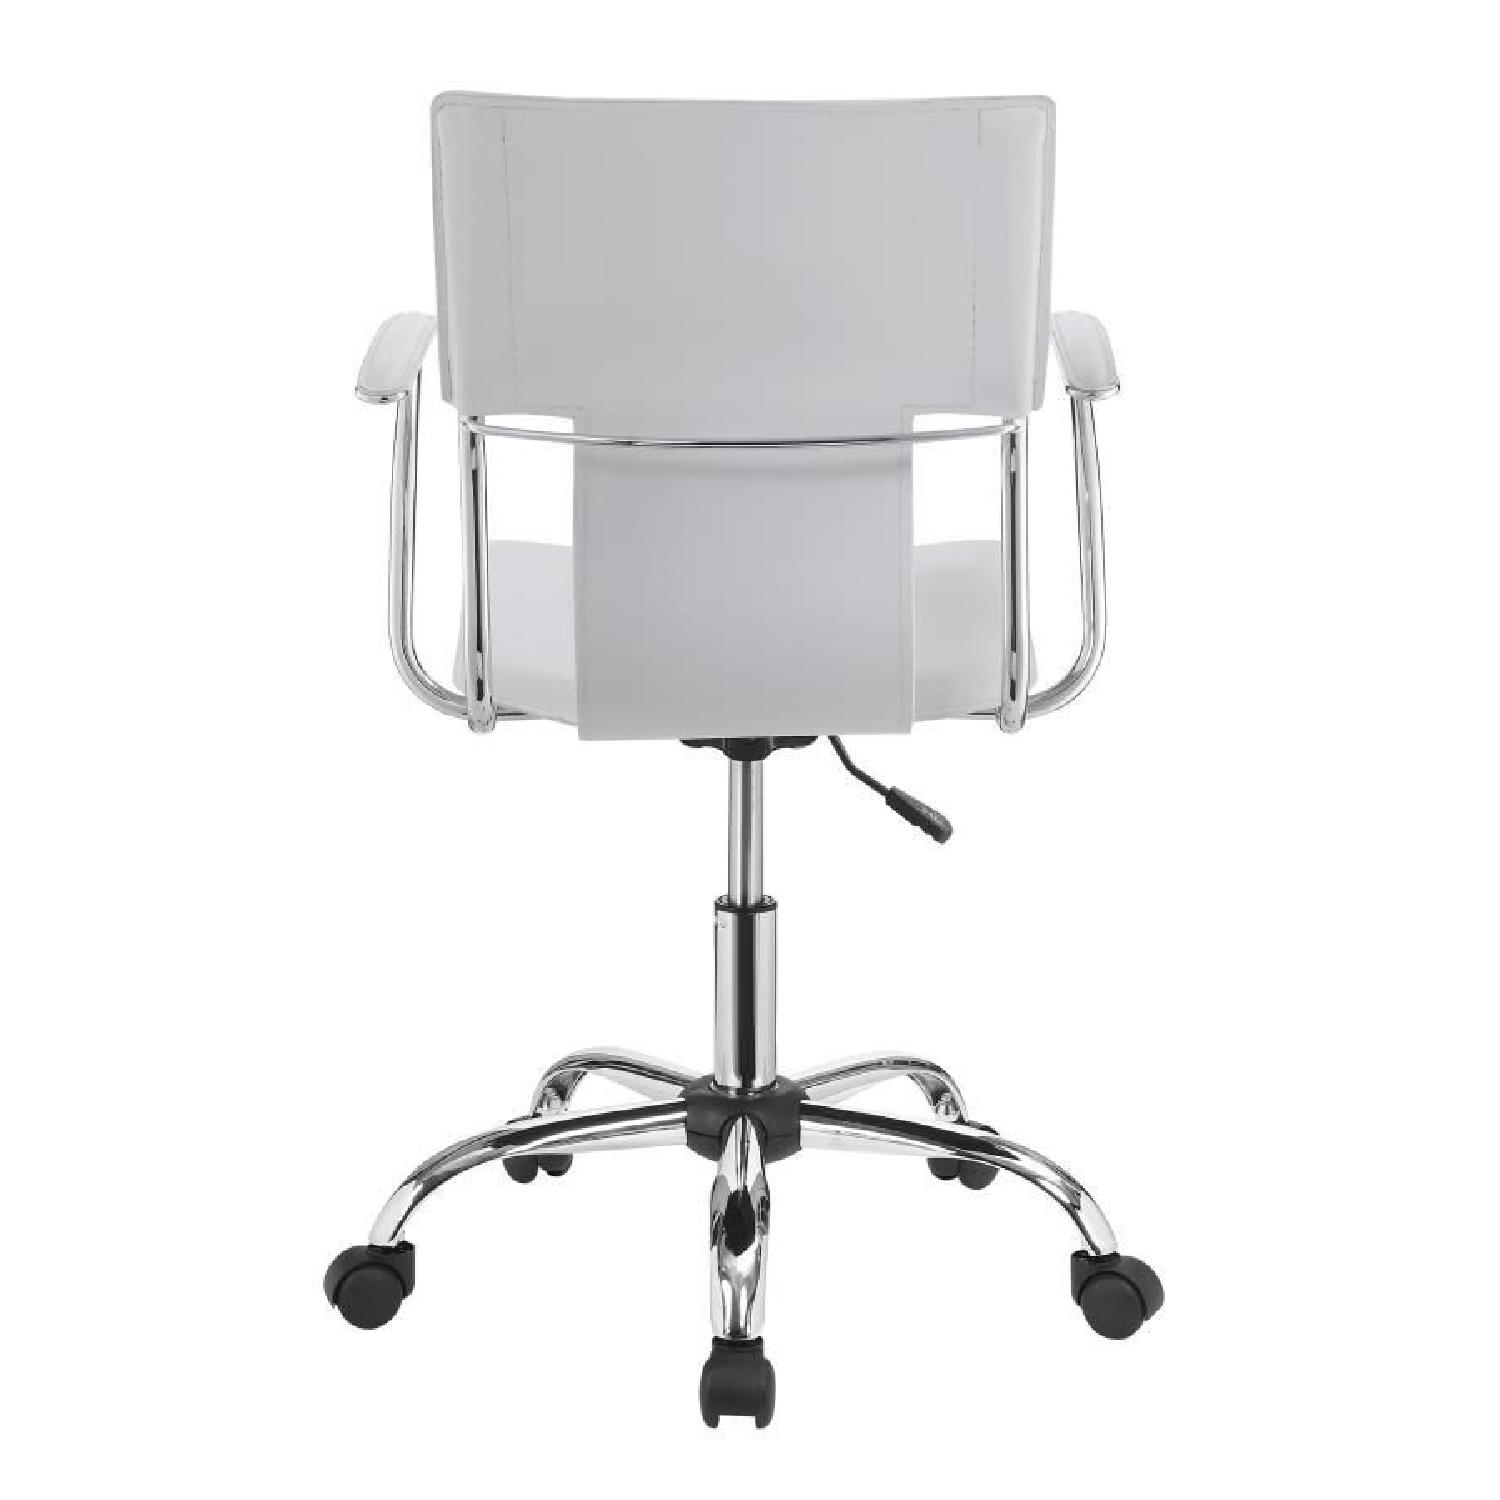 Modern Office Chair in White Leatherette w/ Chrome Legs - image-2